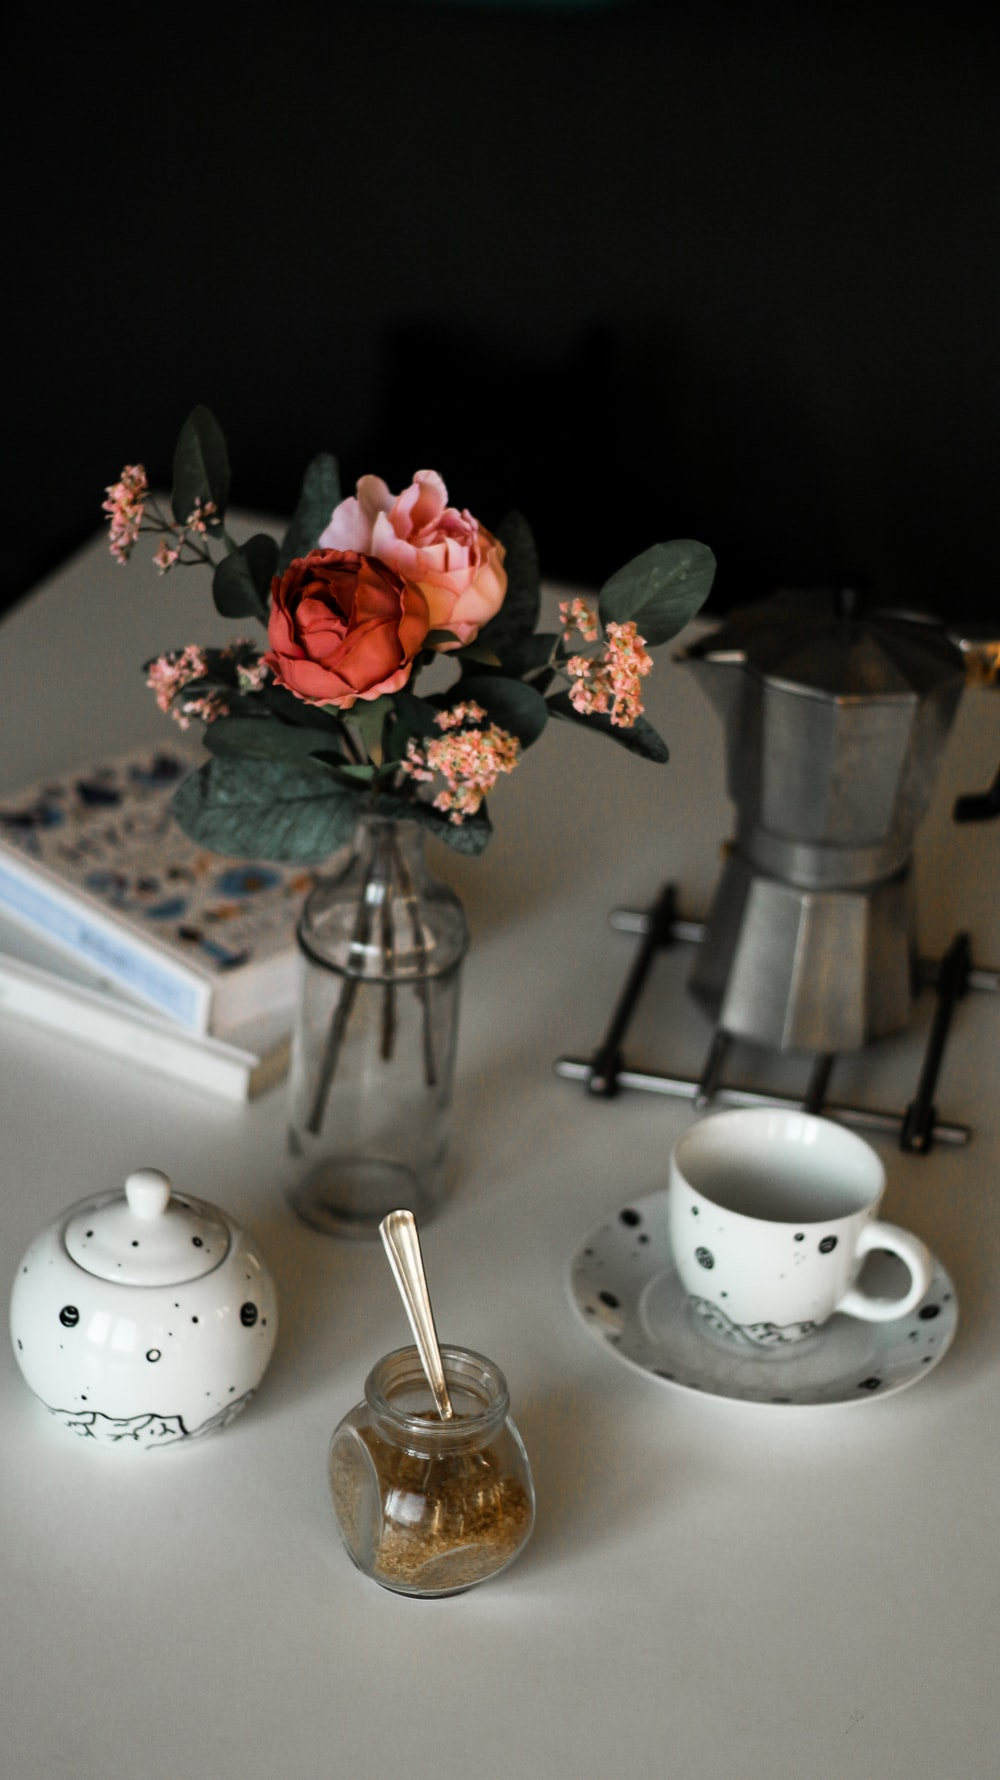 teacup by kettle and vase all on table top